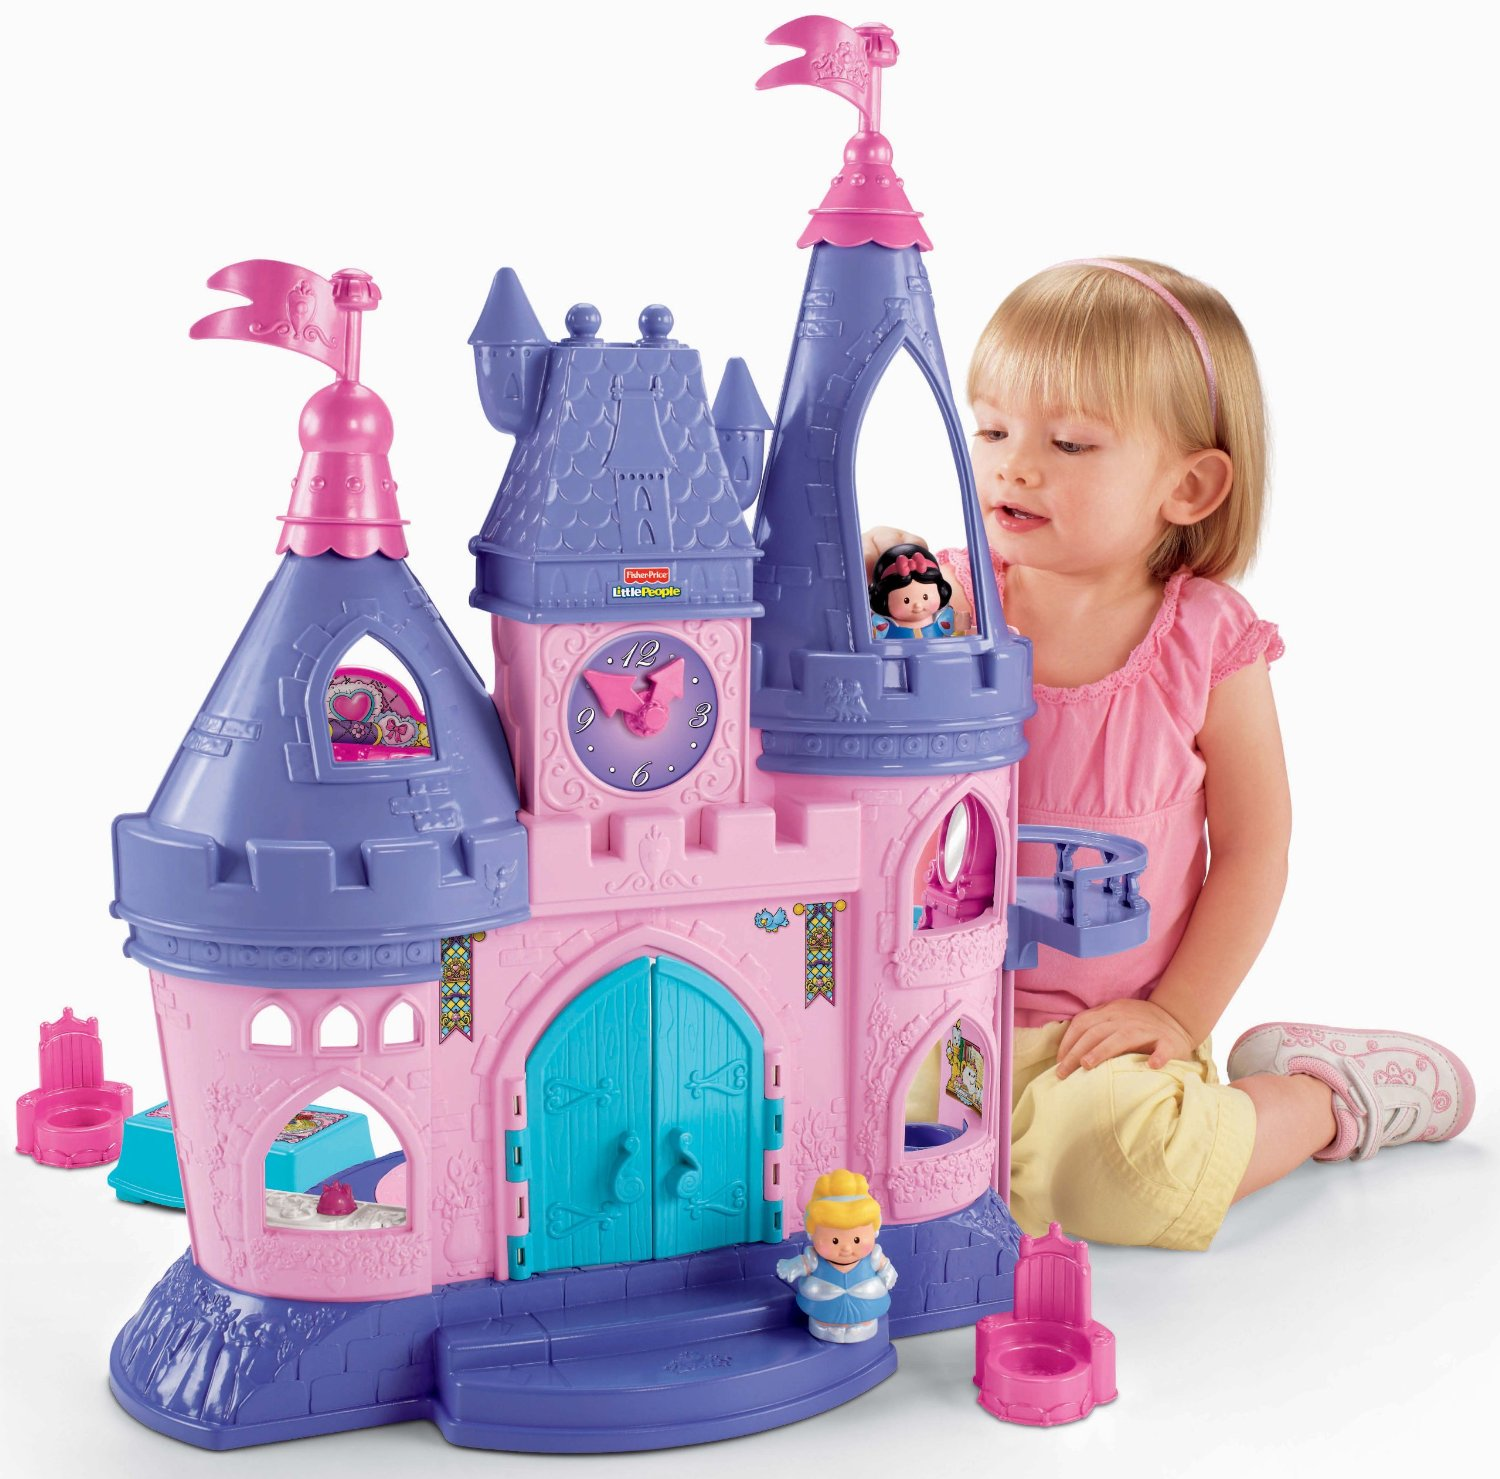 *HOT* Disney Princess Little People Songs Palace by Fisher-Price $25.59 Shipped (Reg. $79.99)